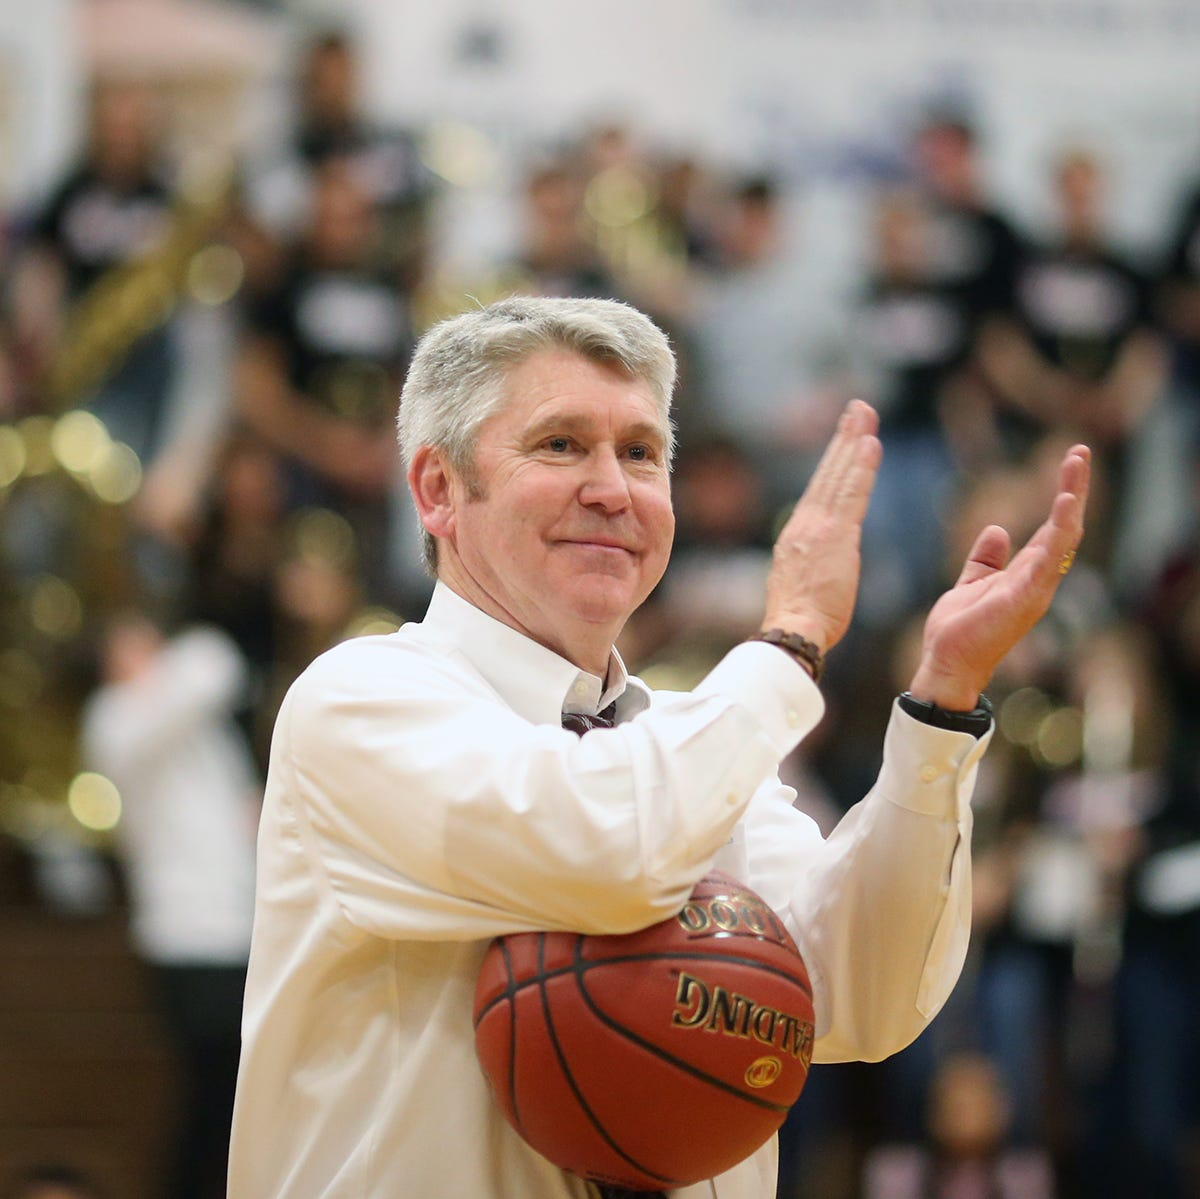 South Kitsap's Callaghan makes coaching retirement official